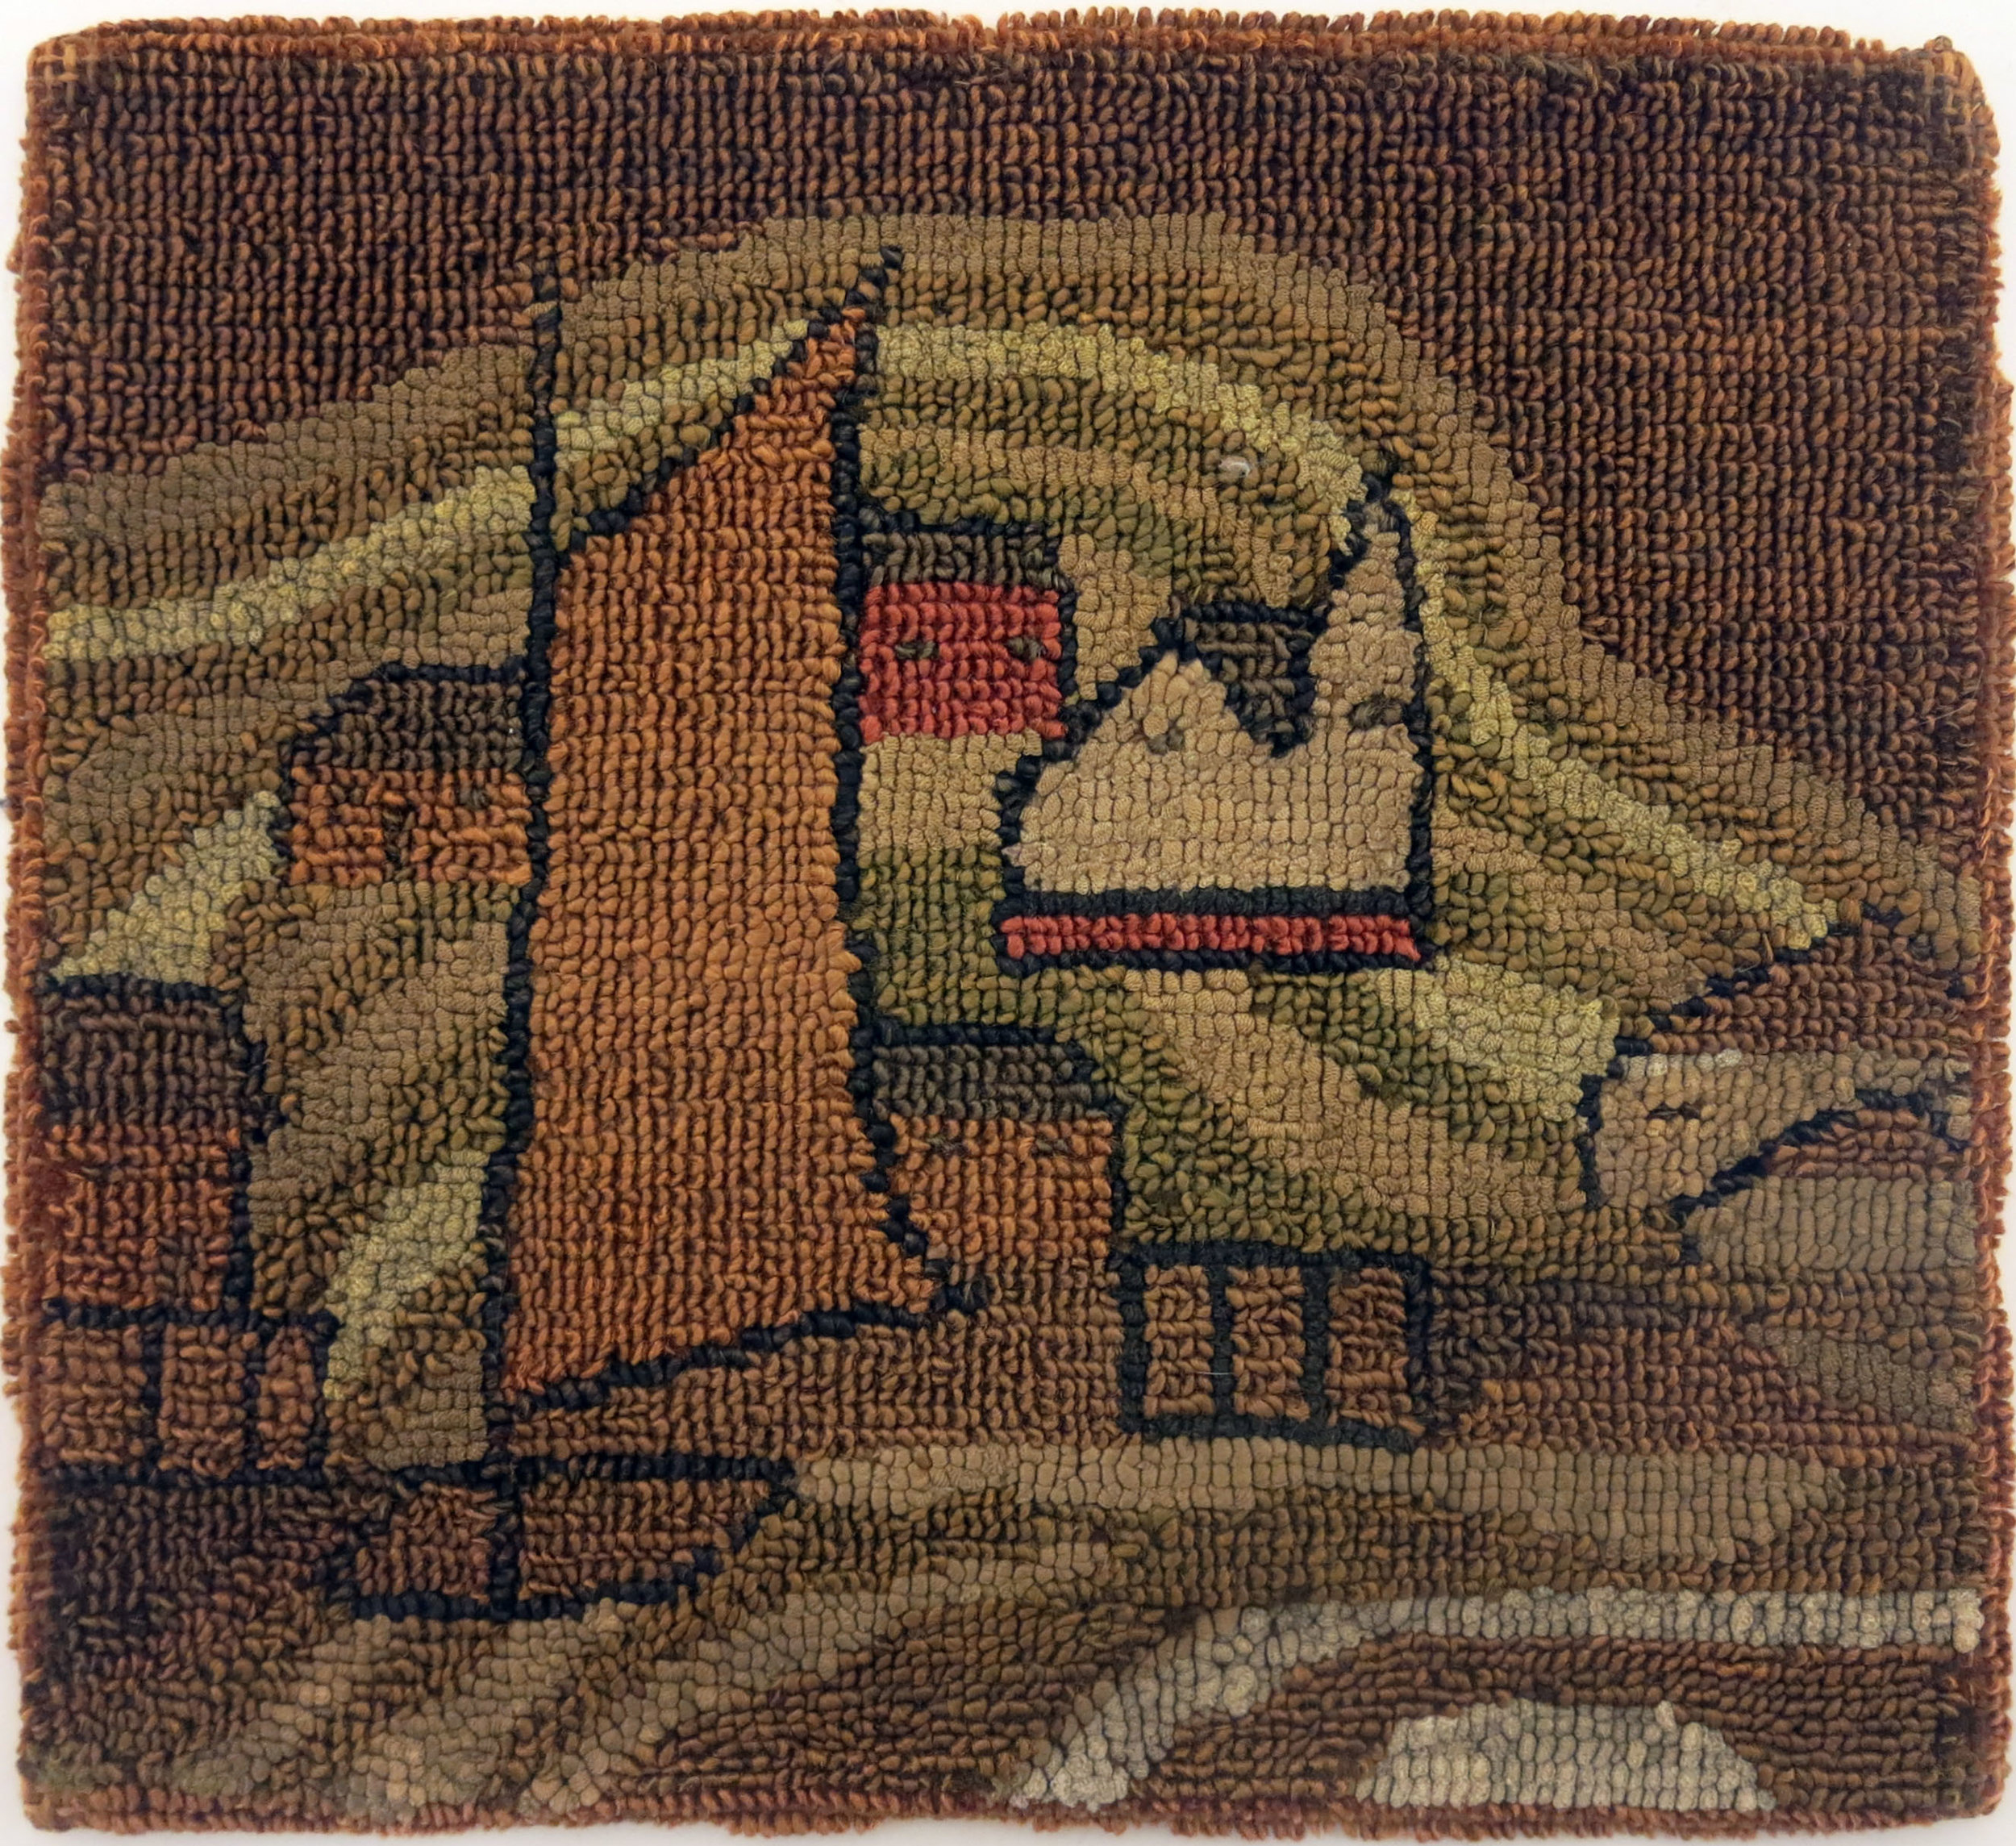 Anonymous, The Grenfell Mission, St. Anthony Table Mat, c. 1933, silk, rayon, and burlap; dyed, 12h x 15 1/2w in.